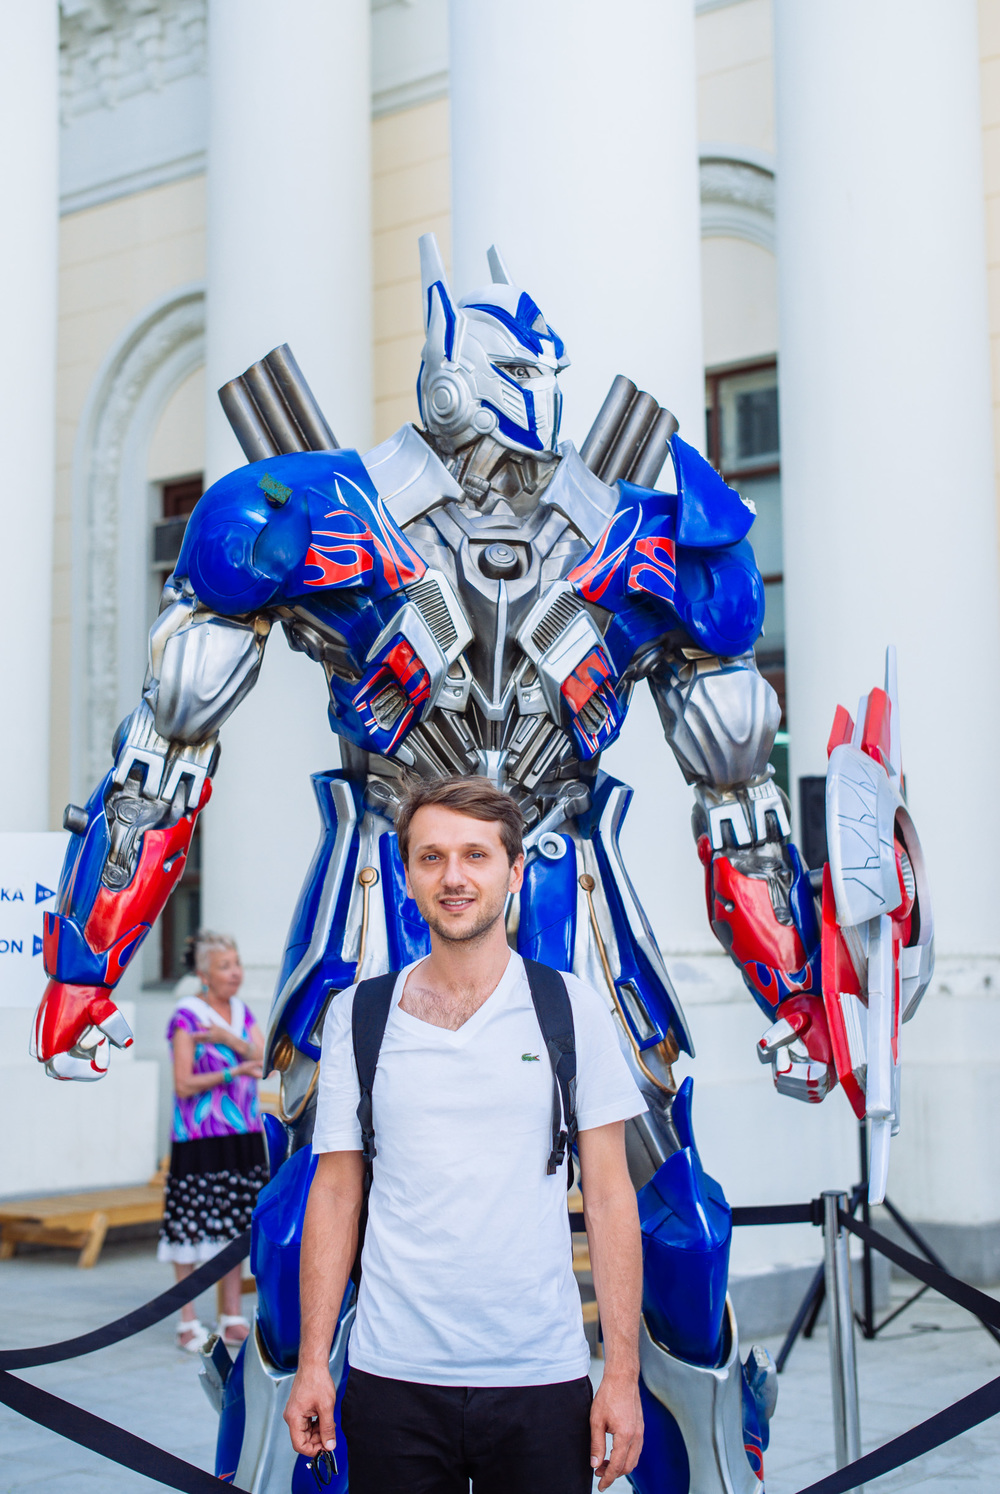 I just had to had a photo with a Transformer. VDNH Park